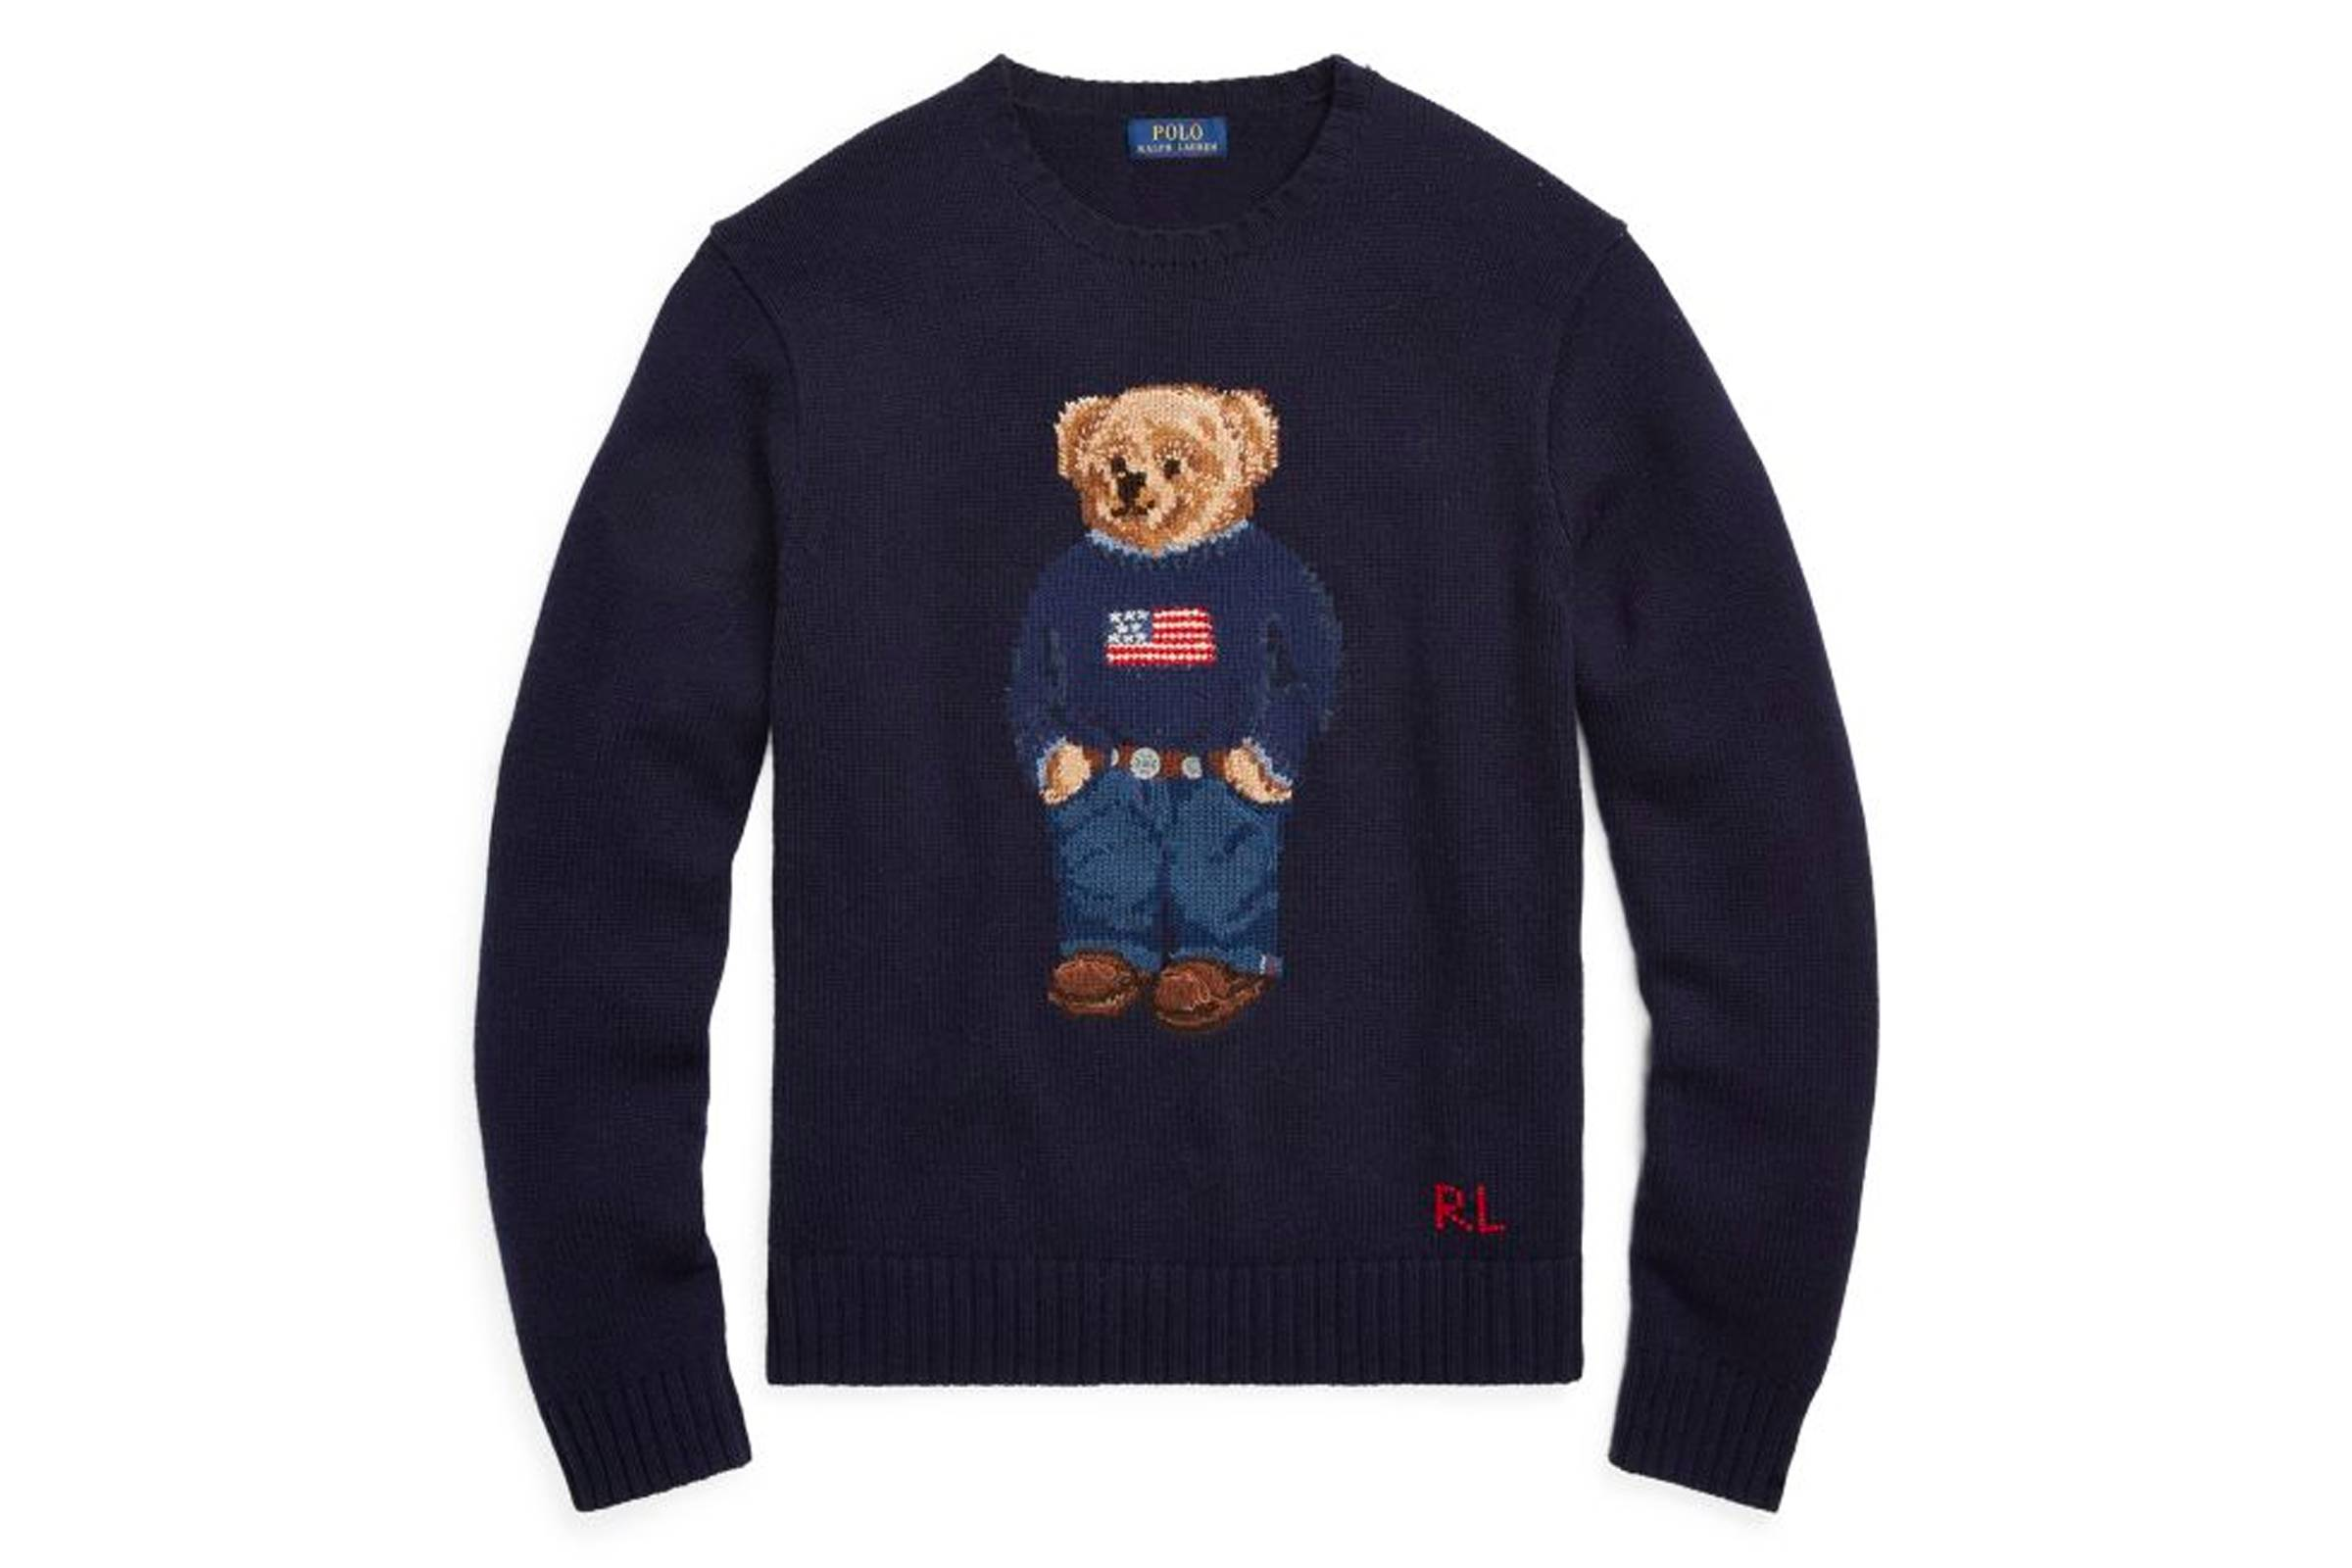 9b1454764f3e An Abridged History of The Polo Bear - Ralph Lauren Polo Bear ...